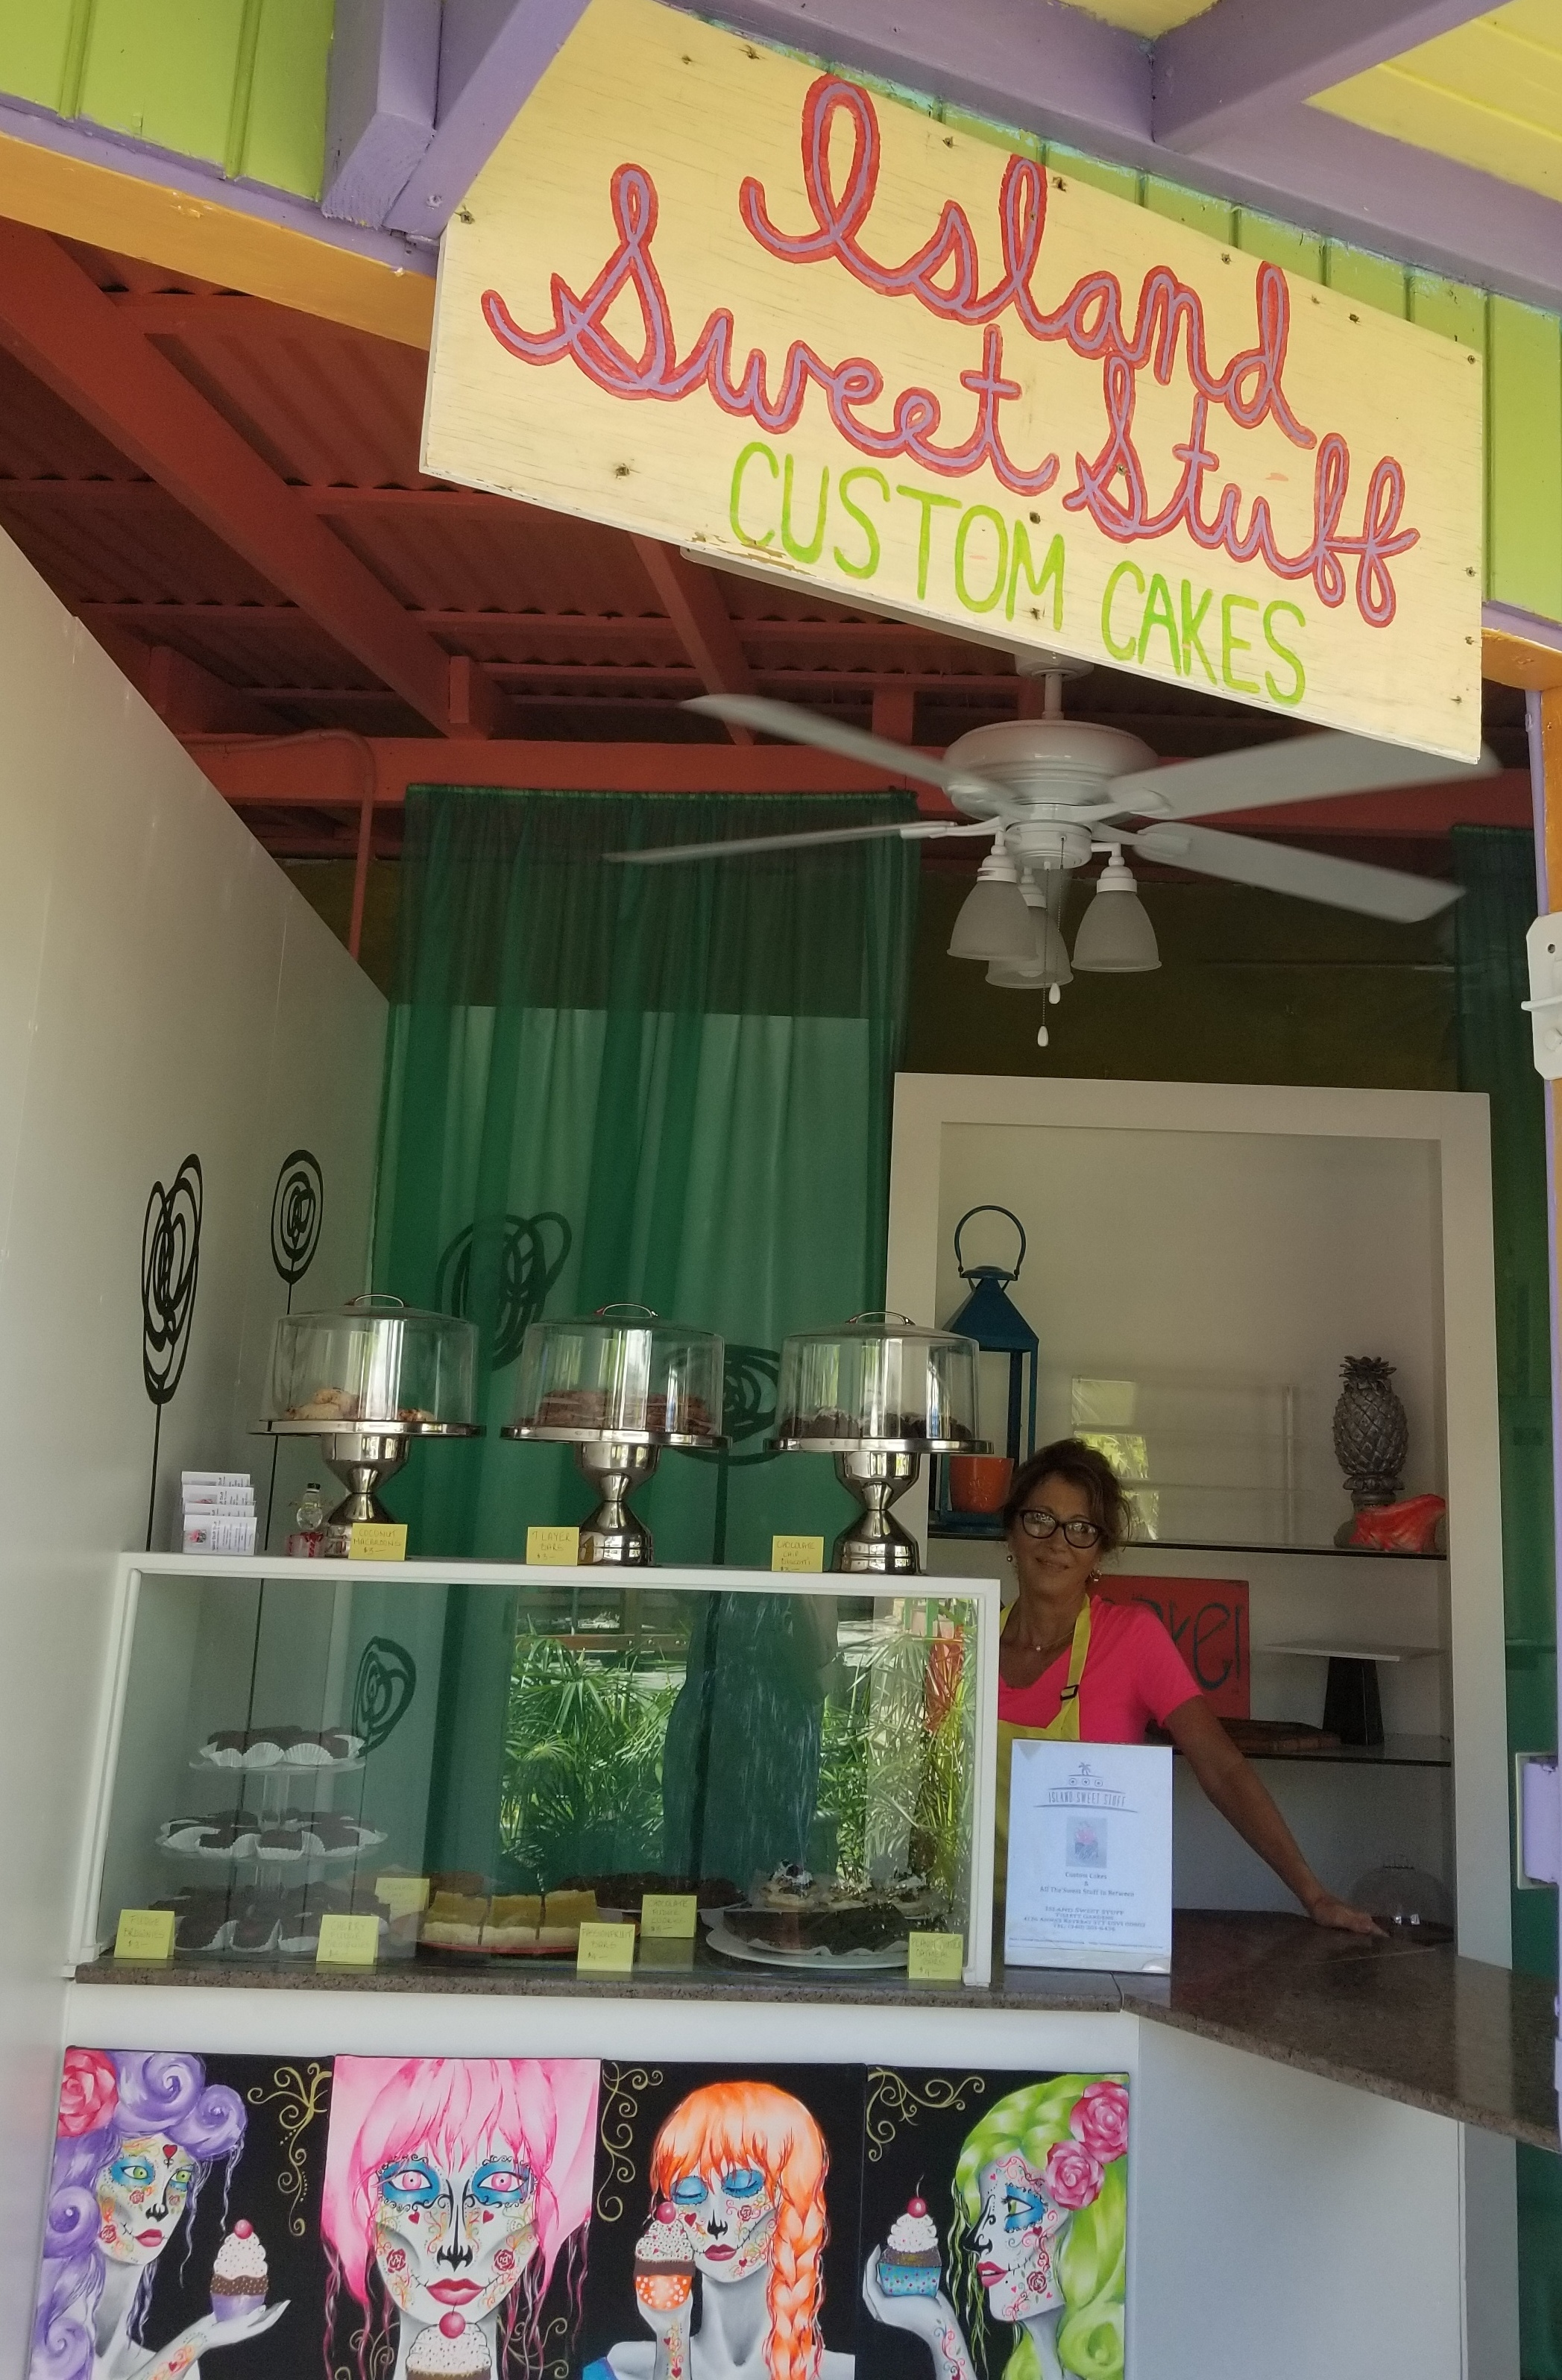 Sweet Stuff owner Cynthia, Pistarackle's next door neighbor and talented custom cake maker, offers delicious daily fresh baked goodies, and designer specialty cakes. Fabulous choice for islander residents and visitors.  Click Here For More Details